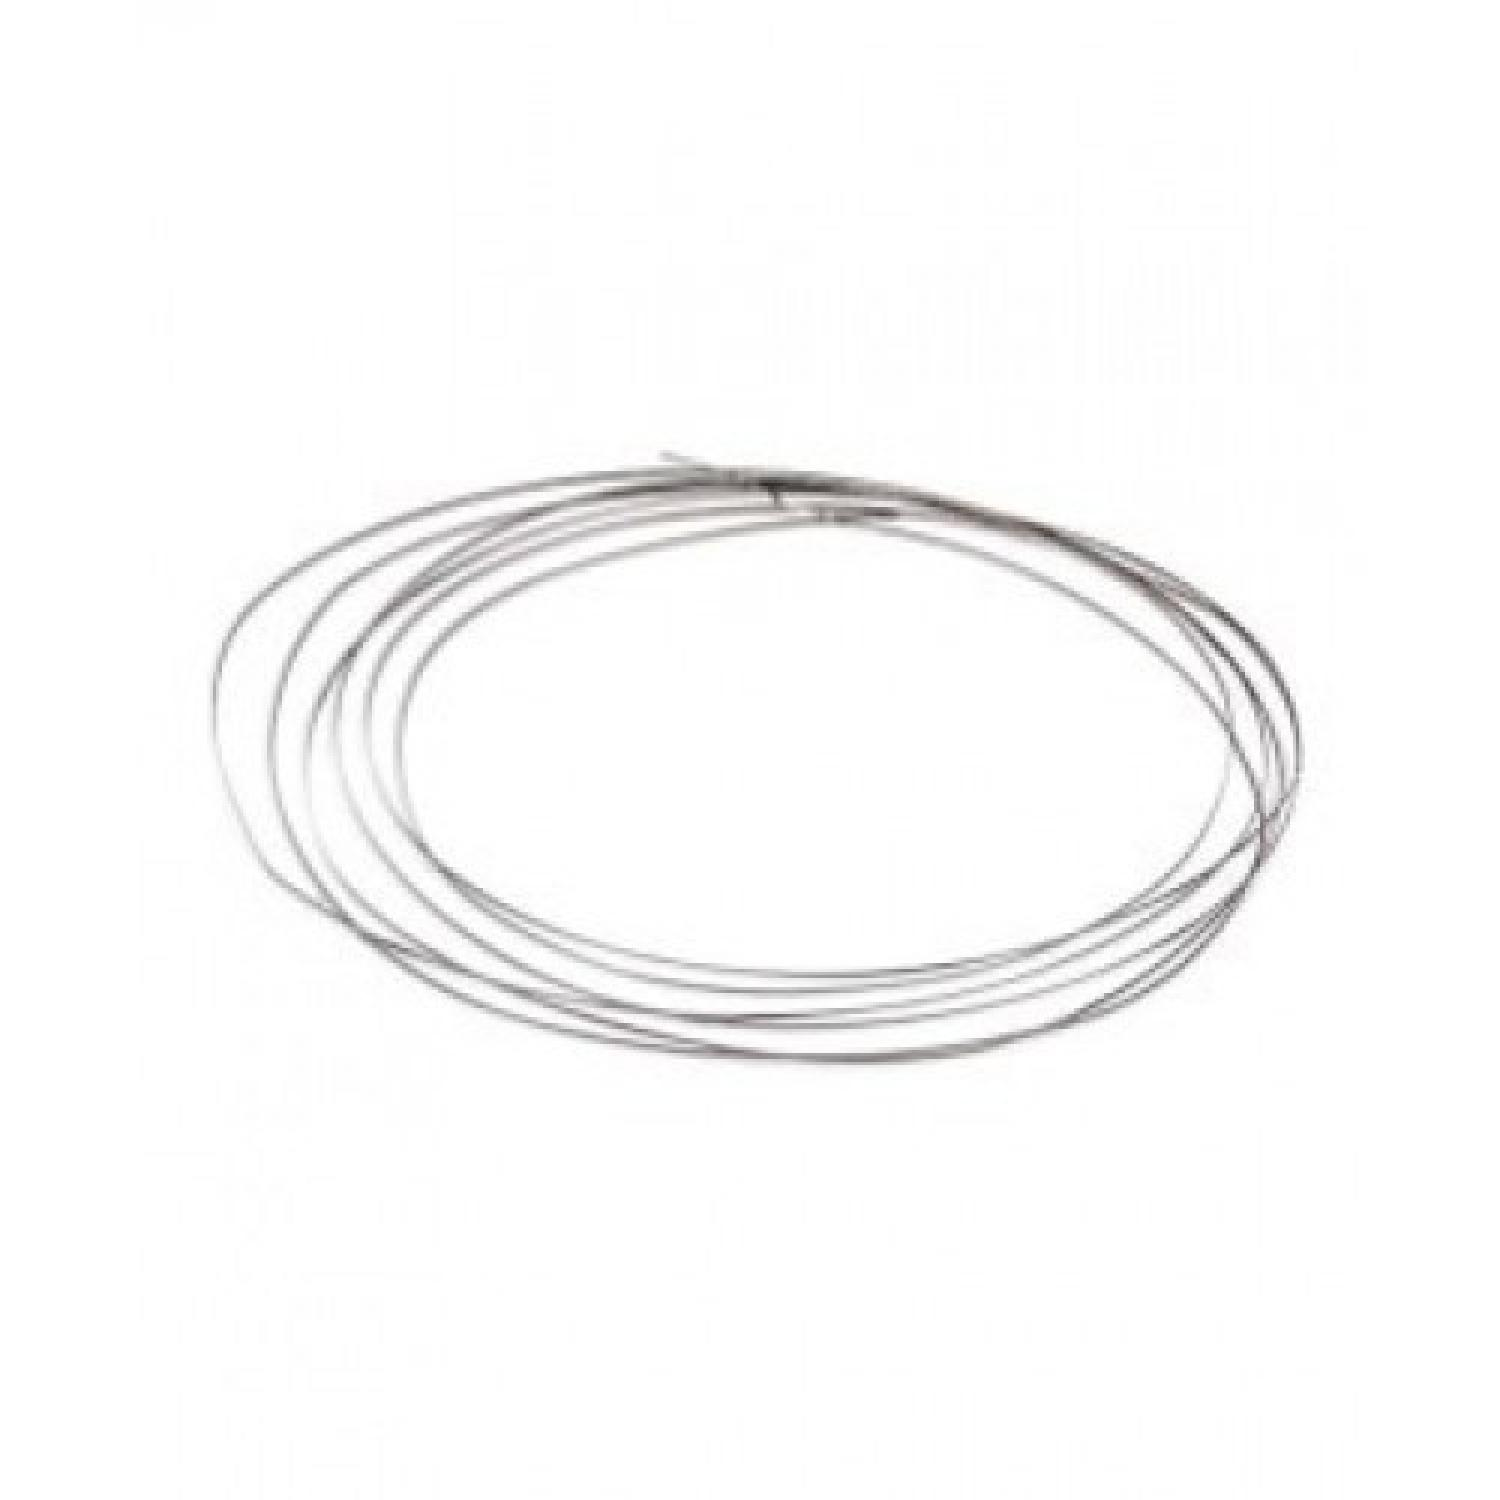 Rebuildable Vaporizer Kanthal A1 Wire 1 Meter